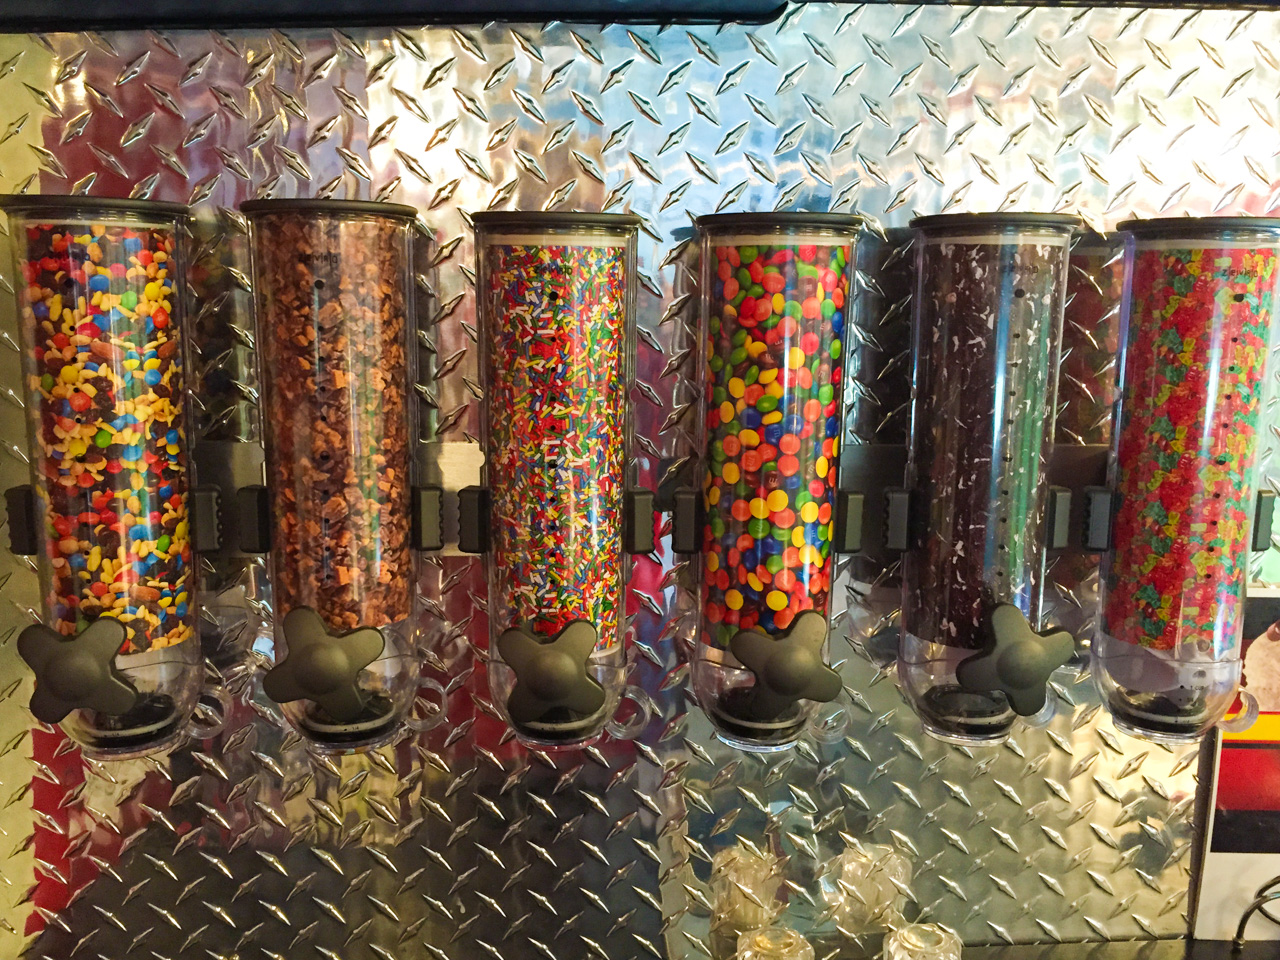 Variety of Toppings for Ice Cream